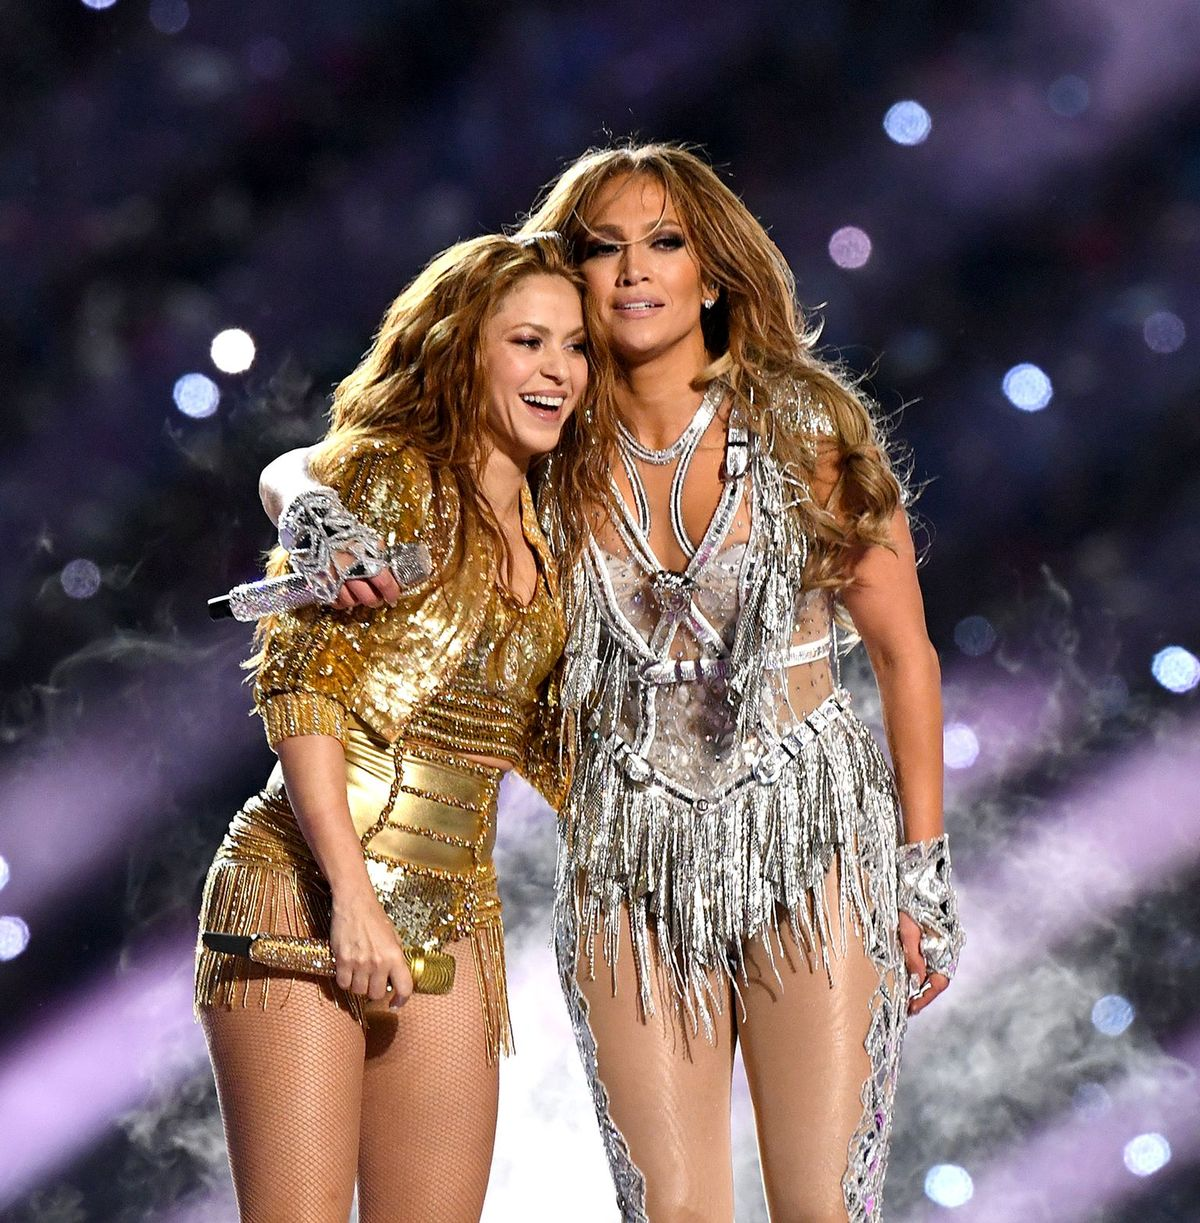 Shakira and Jennifer Lopez onstage during the 2020 Super Bowl LIV Halftime Show in Miami | Source: Getty Images